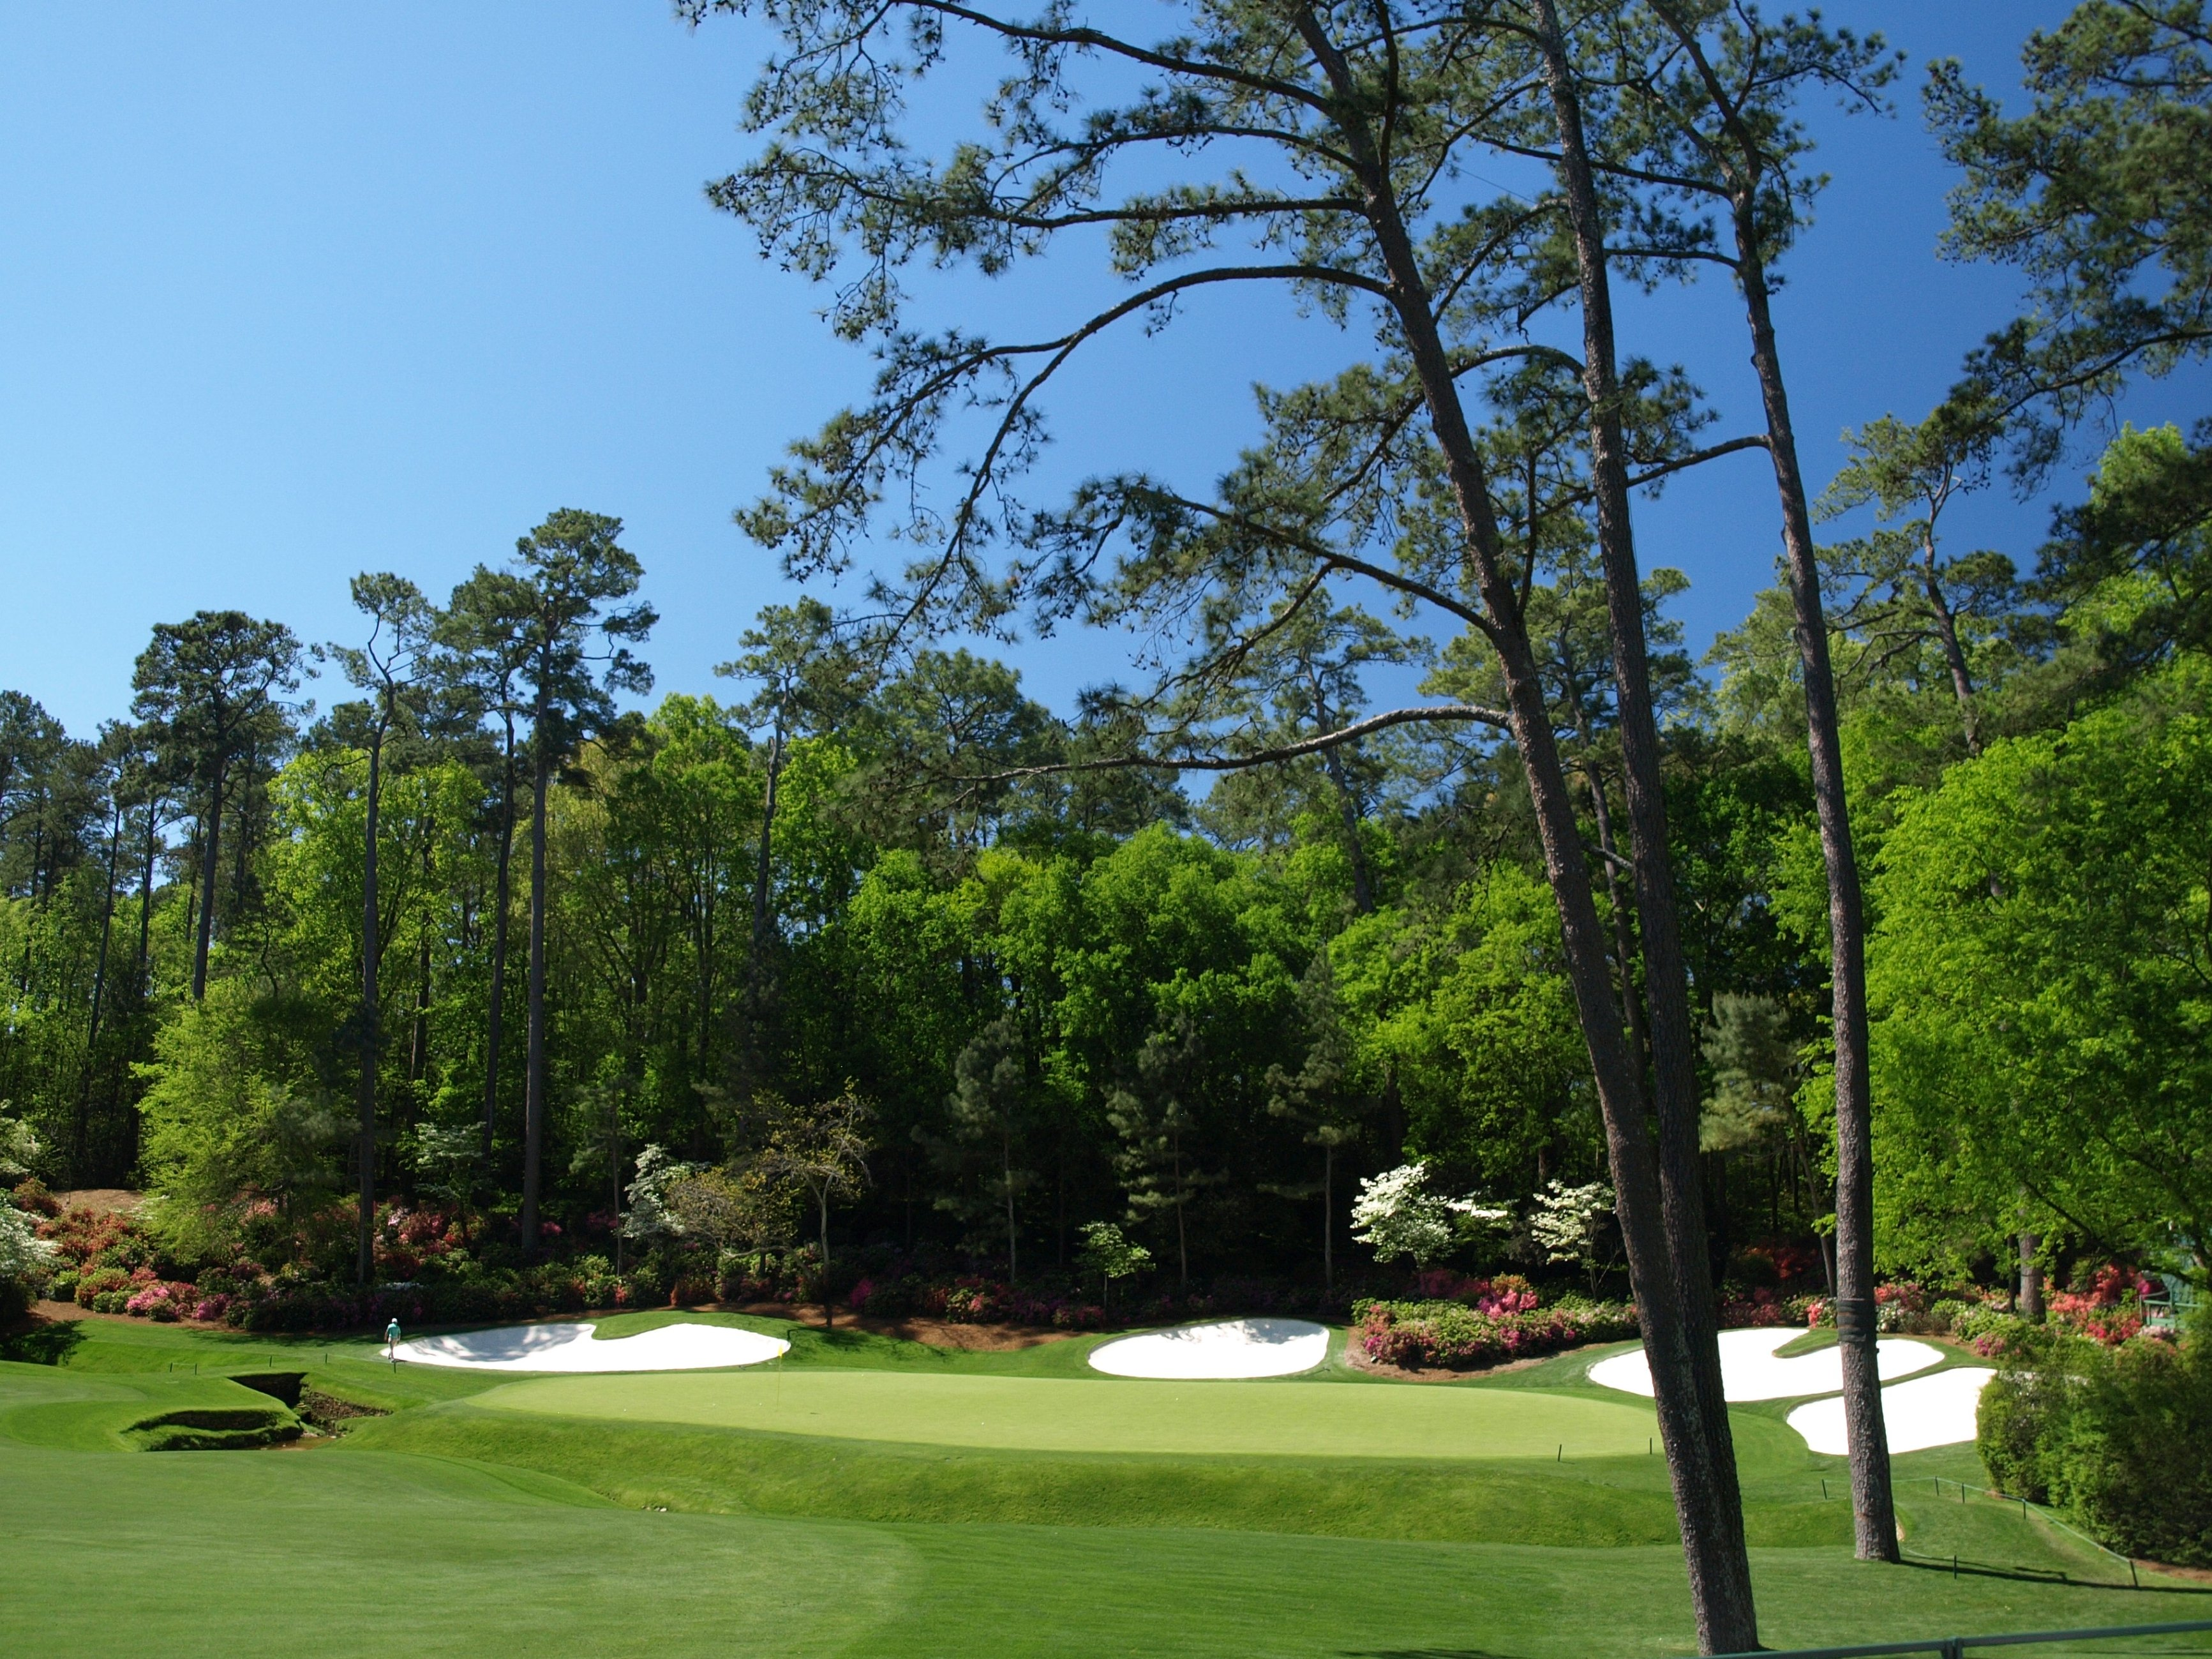 The 13th green at Augusta National Golf Club